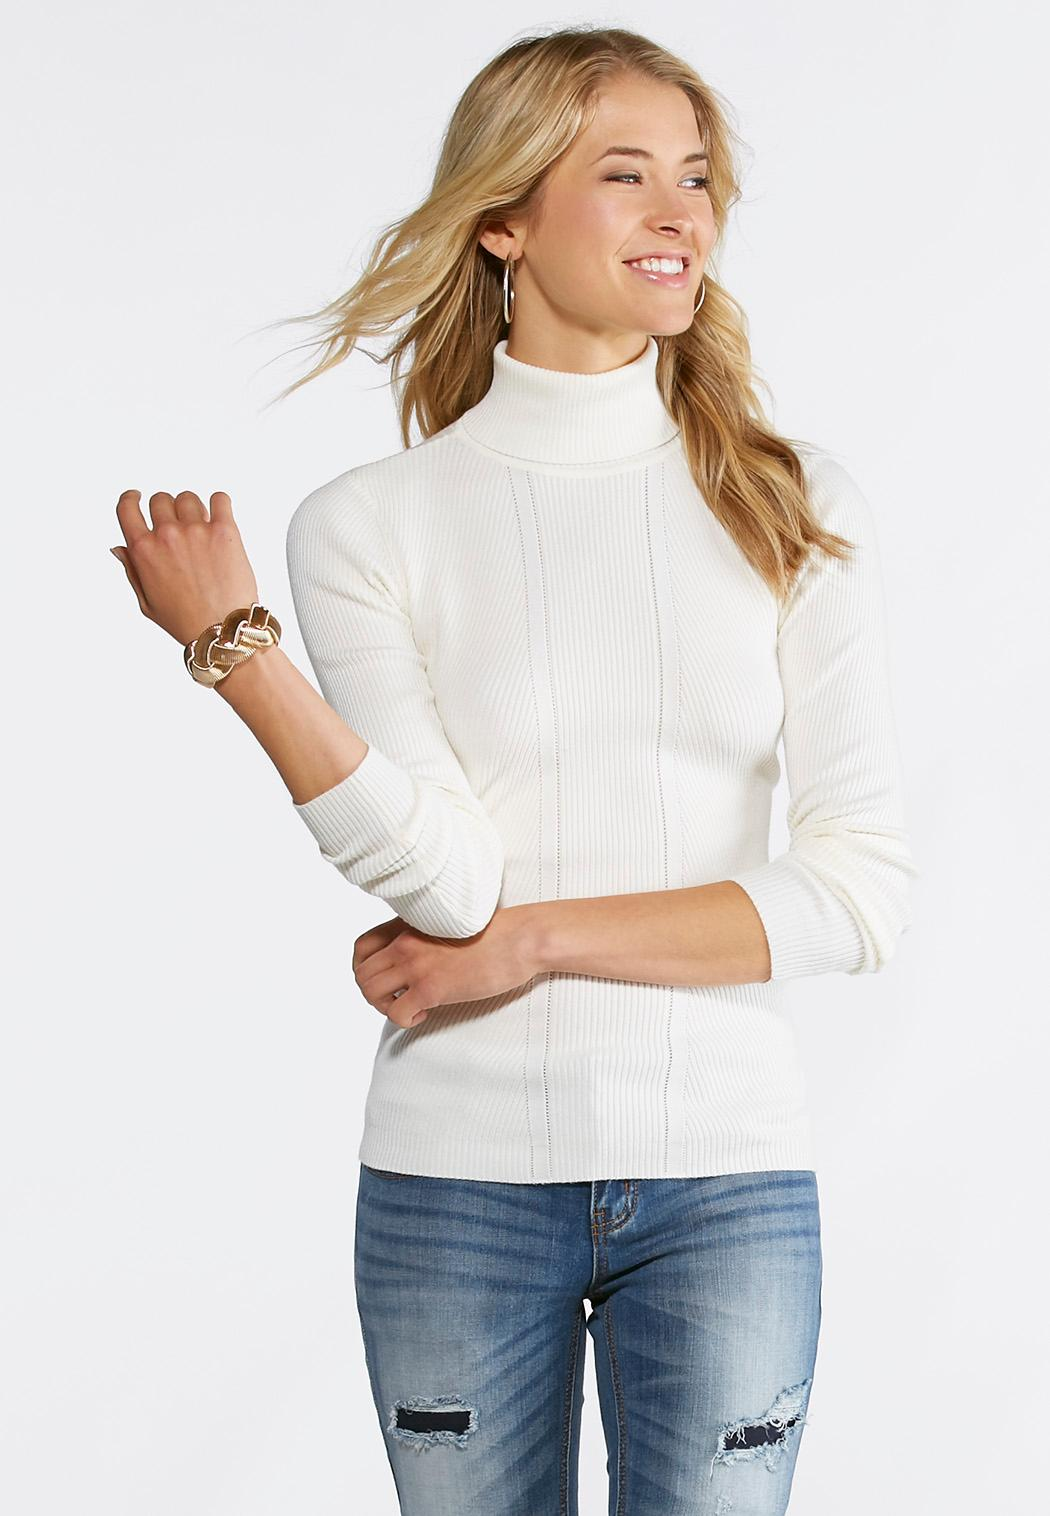 Cato fashions careers - Ribbed Knit Turtleneck Sweater